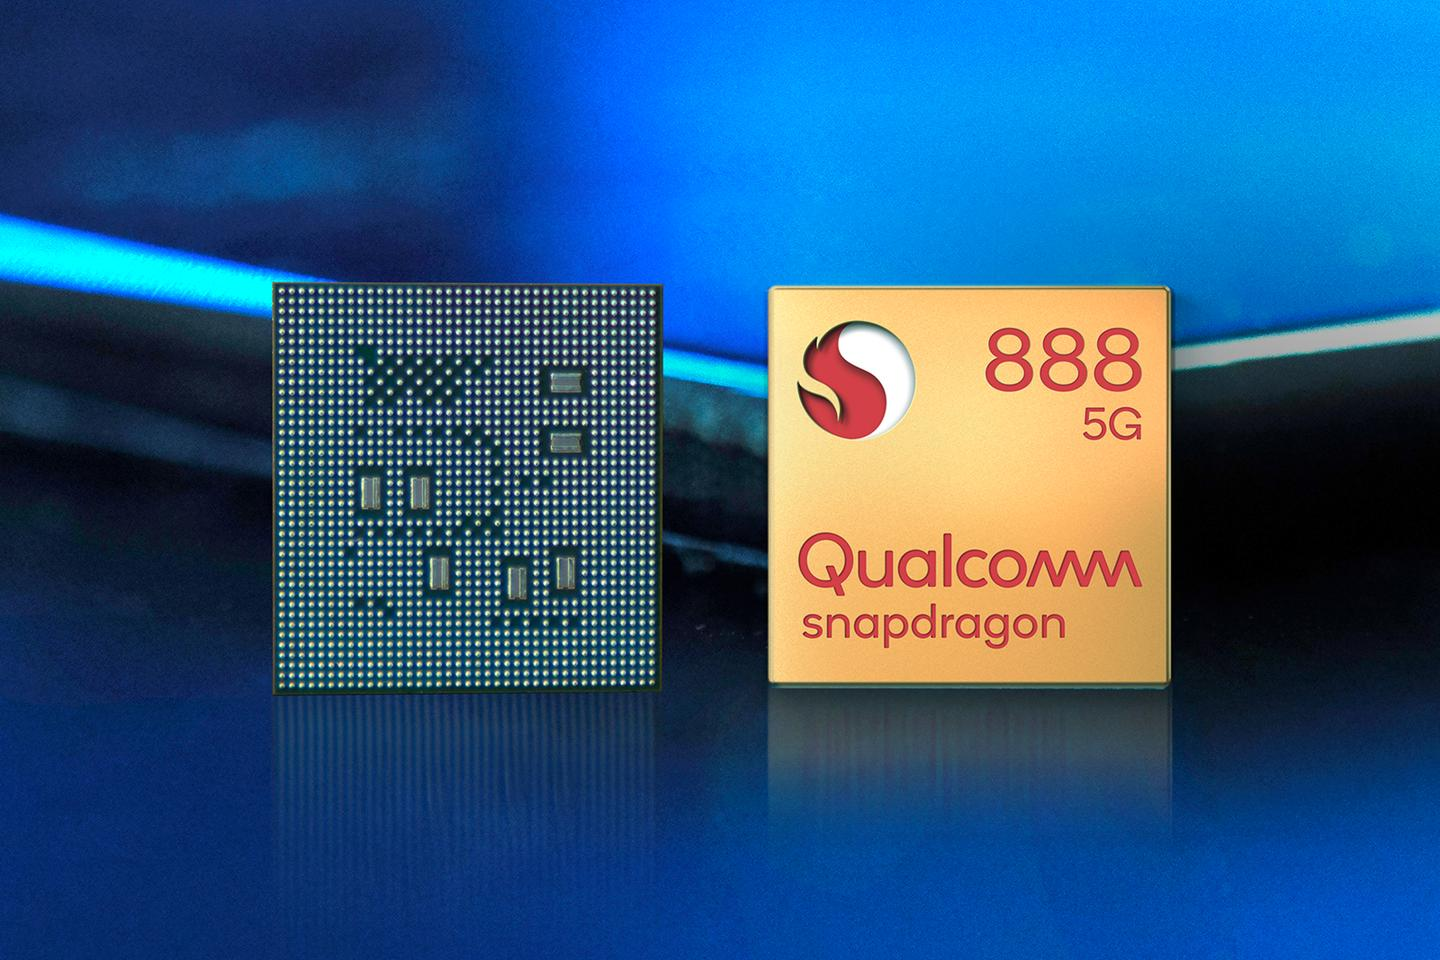 The Snapdragon 888 includes 5G and AI improvements